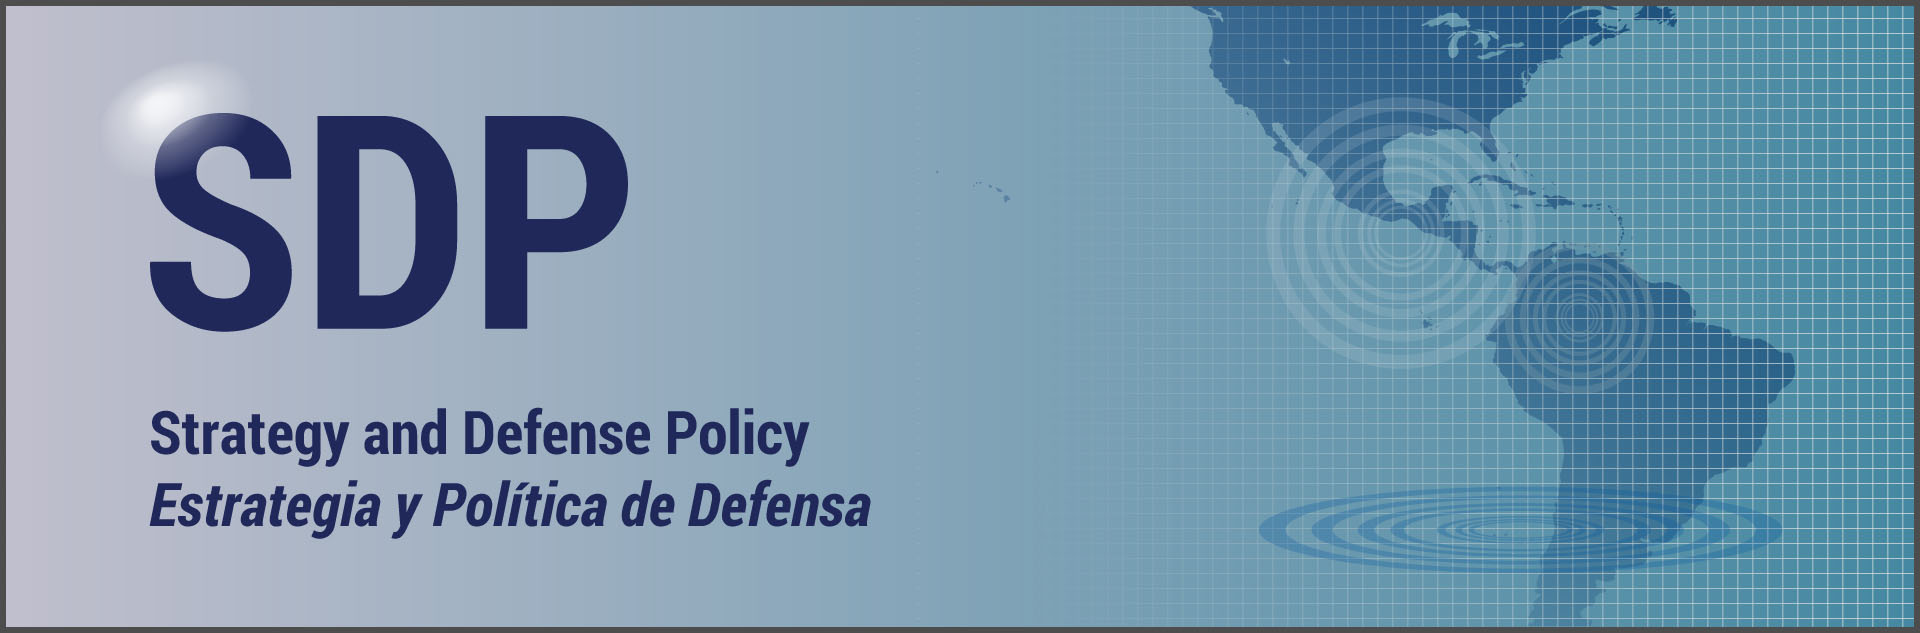 Strategy and Defense Policy (SDP)